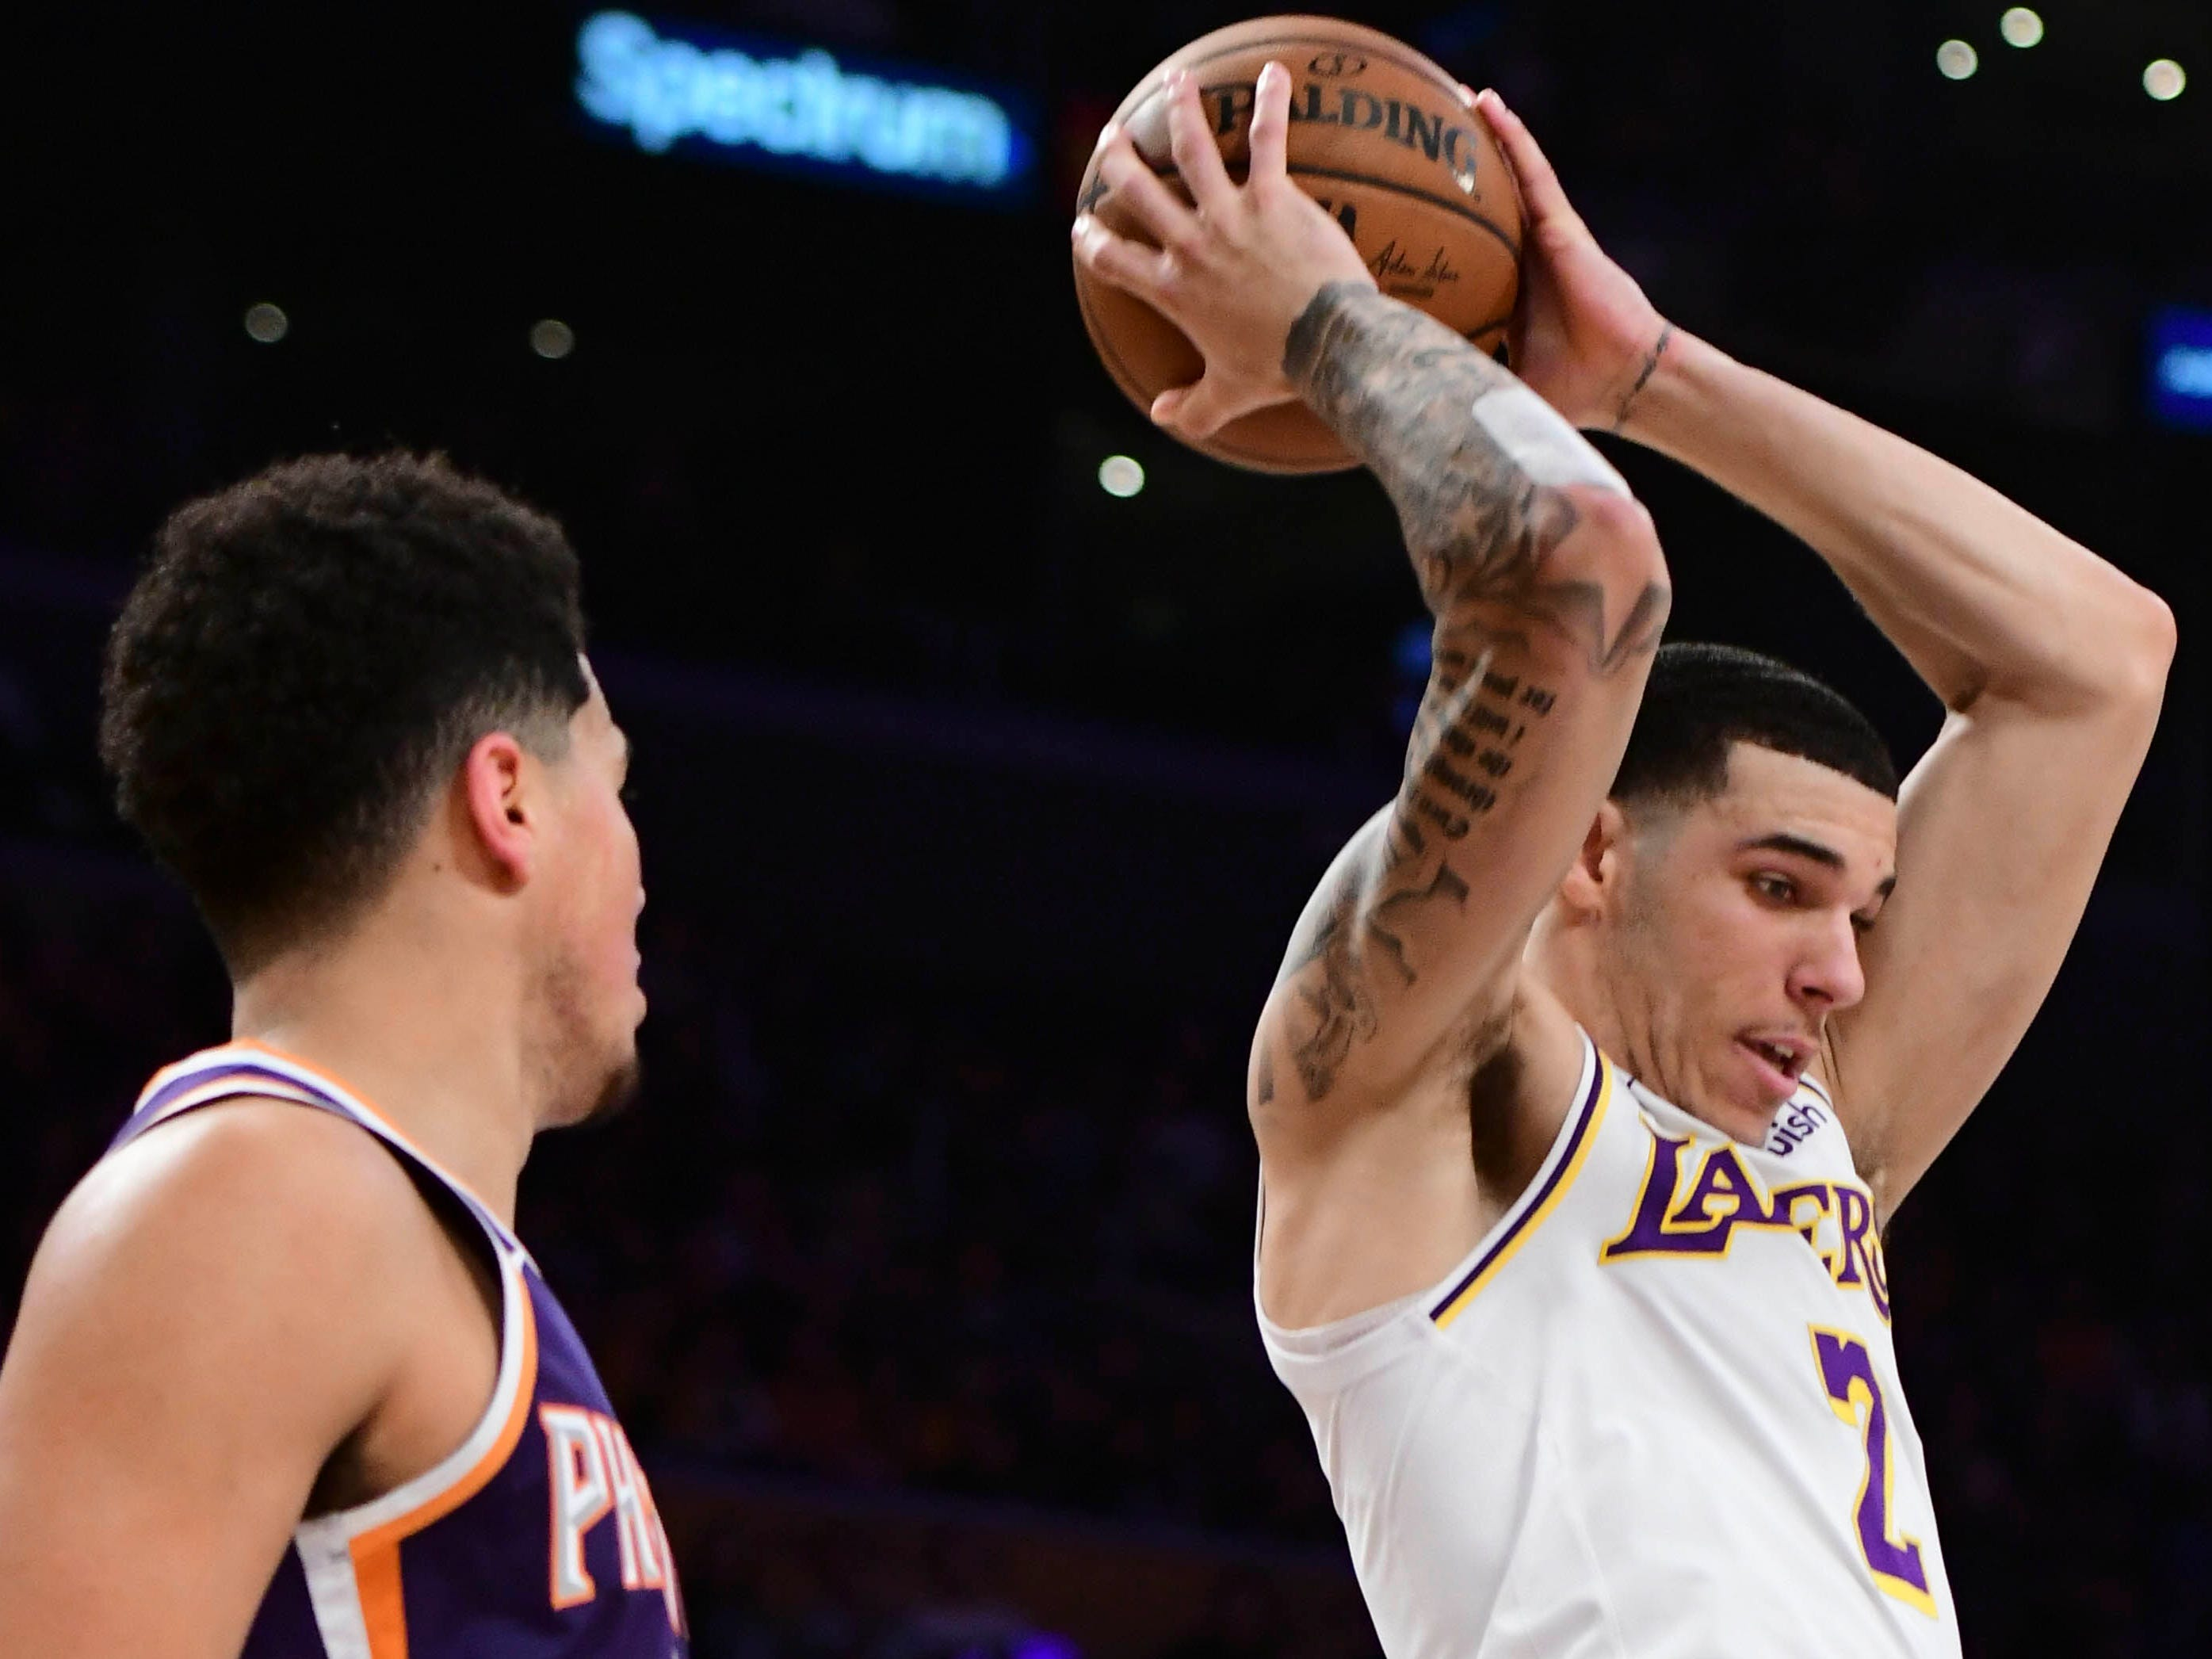 Dec 2, 2018; Los Angeles, CA, USA; Los Angeles Lakers guard Lonzo Ball (2) grabs a rebound in front of Phoenix Suns guard Devin Booker (1) during the second quarter at Staples Center. Mandatory Credit: Robert Hanashiro-USA TODAY Sports